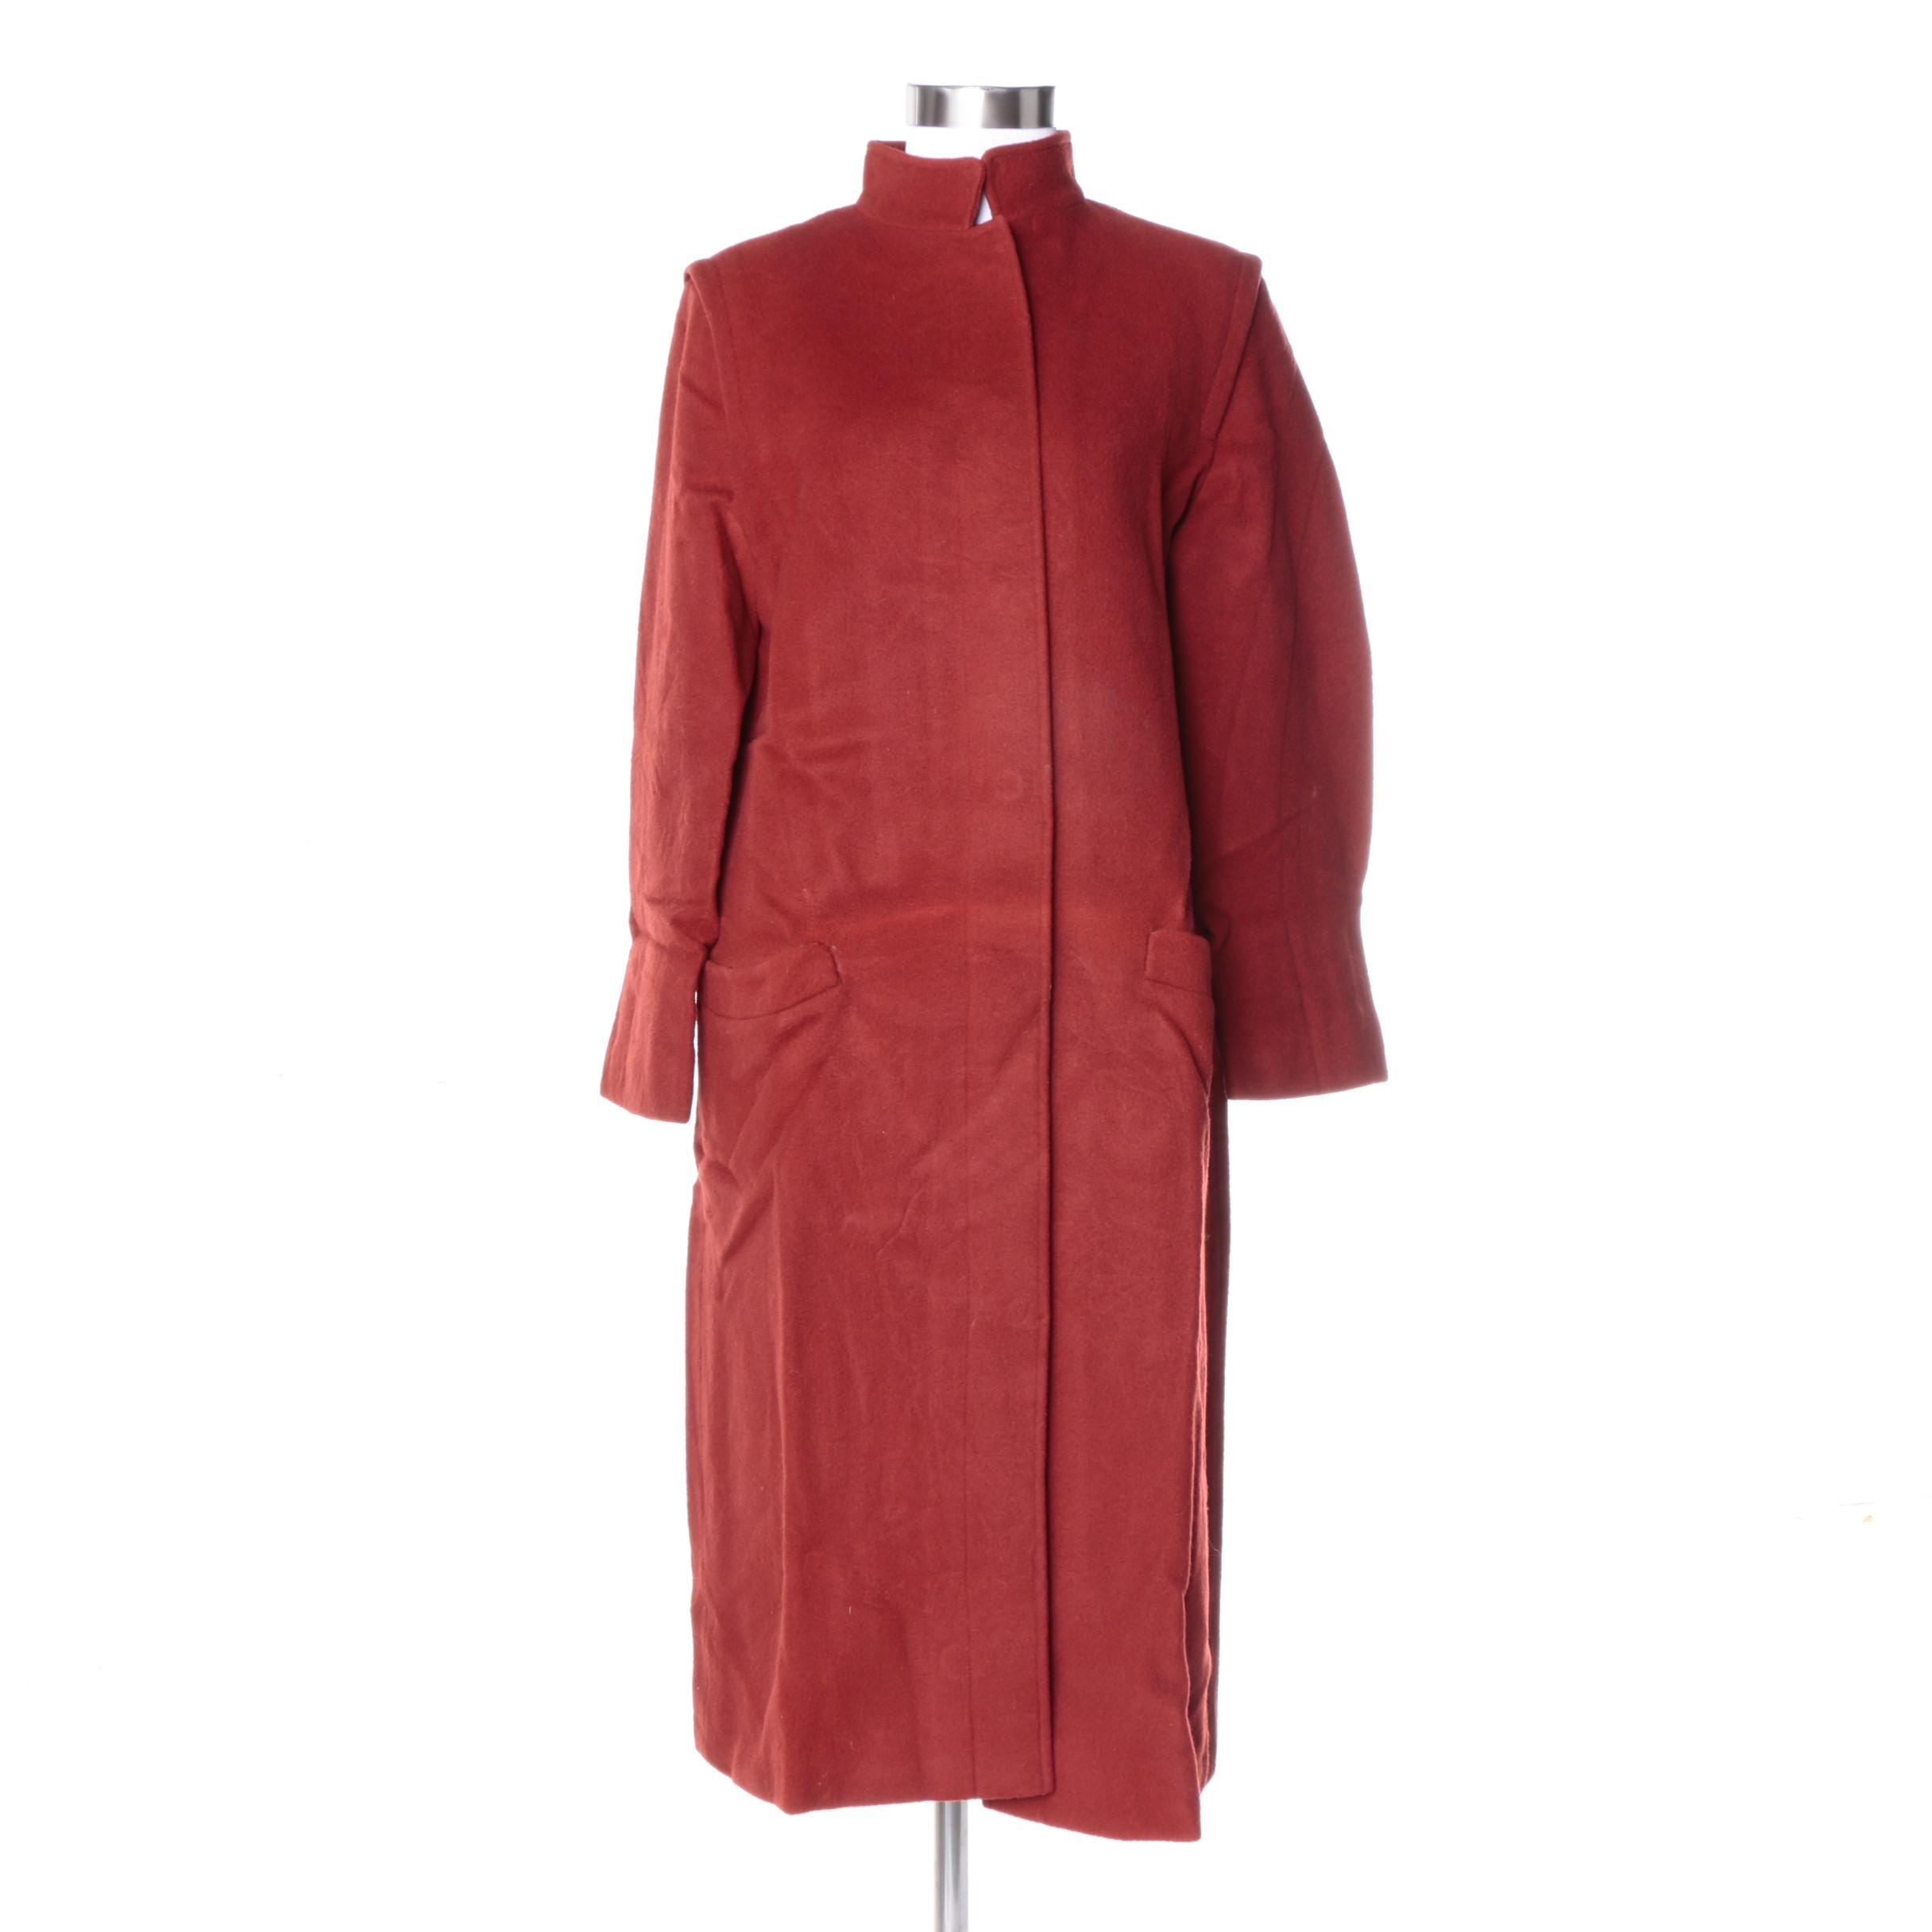 Vintage Georges Rech of France Red Wool Coat